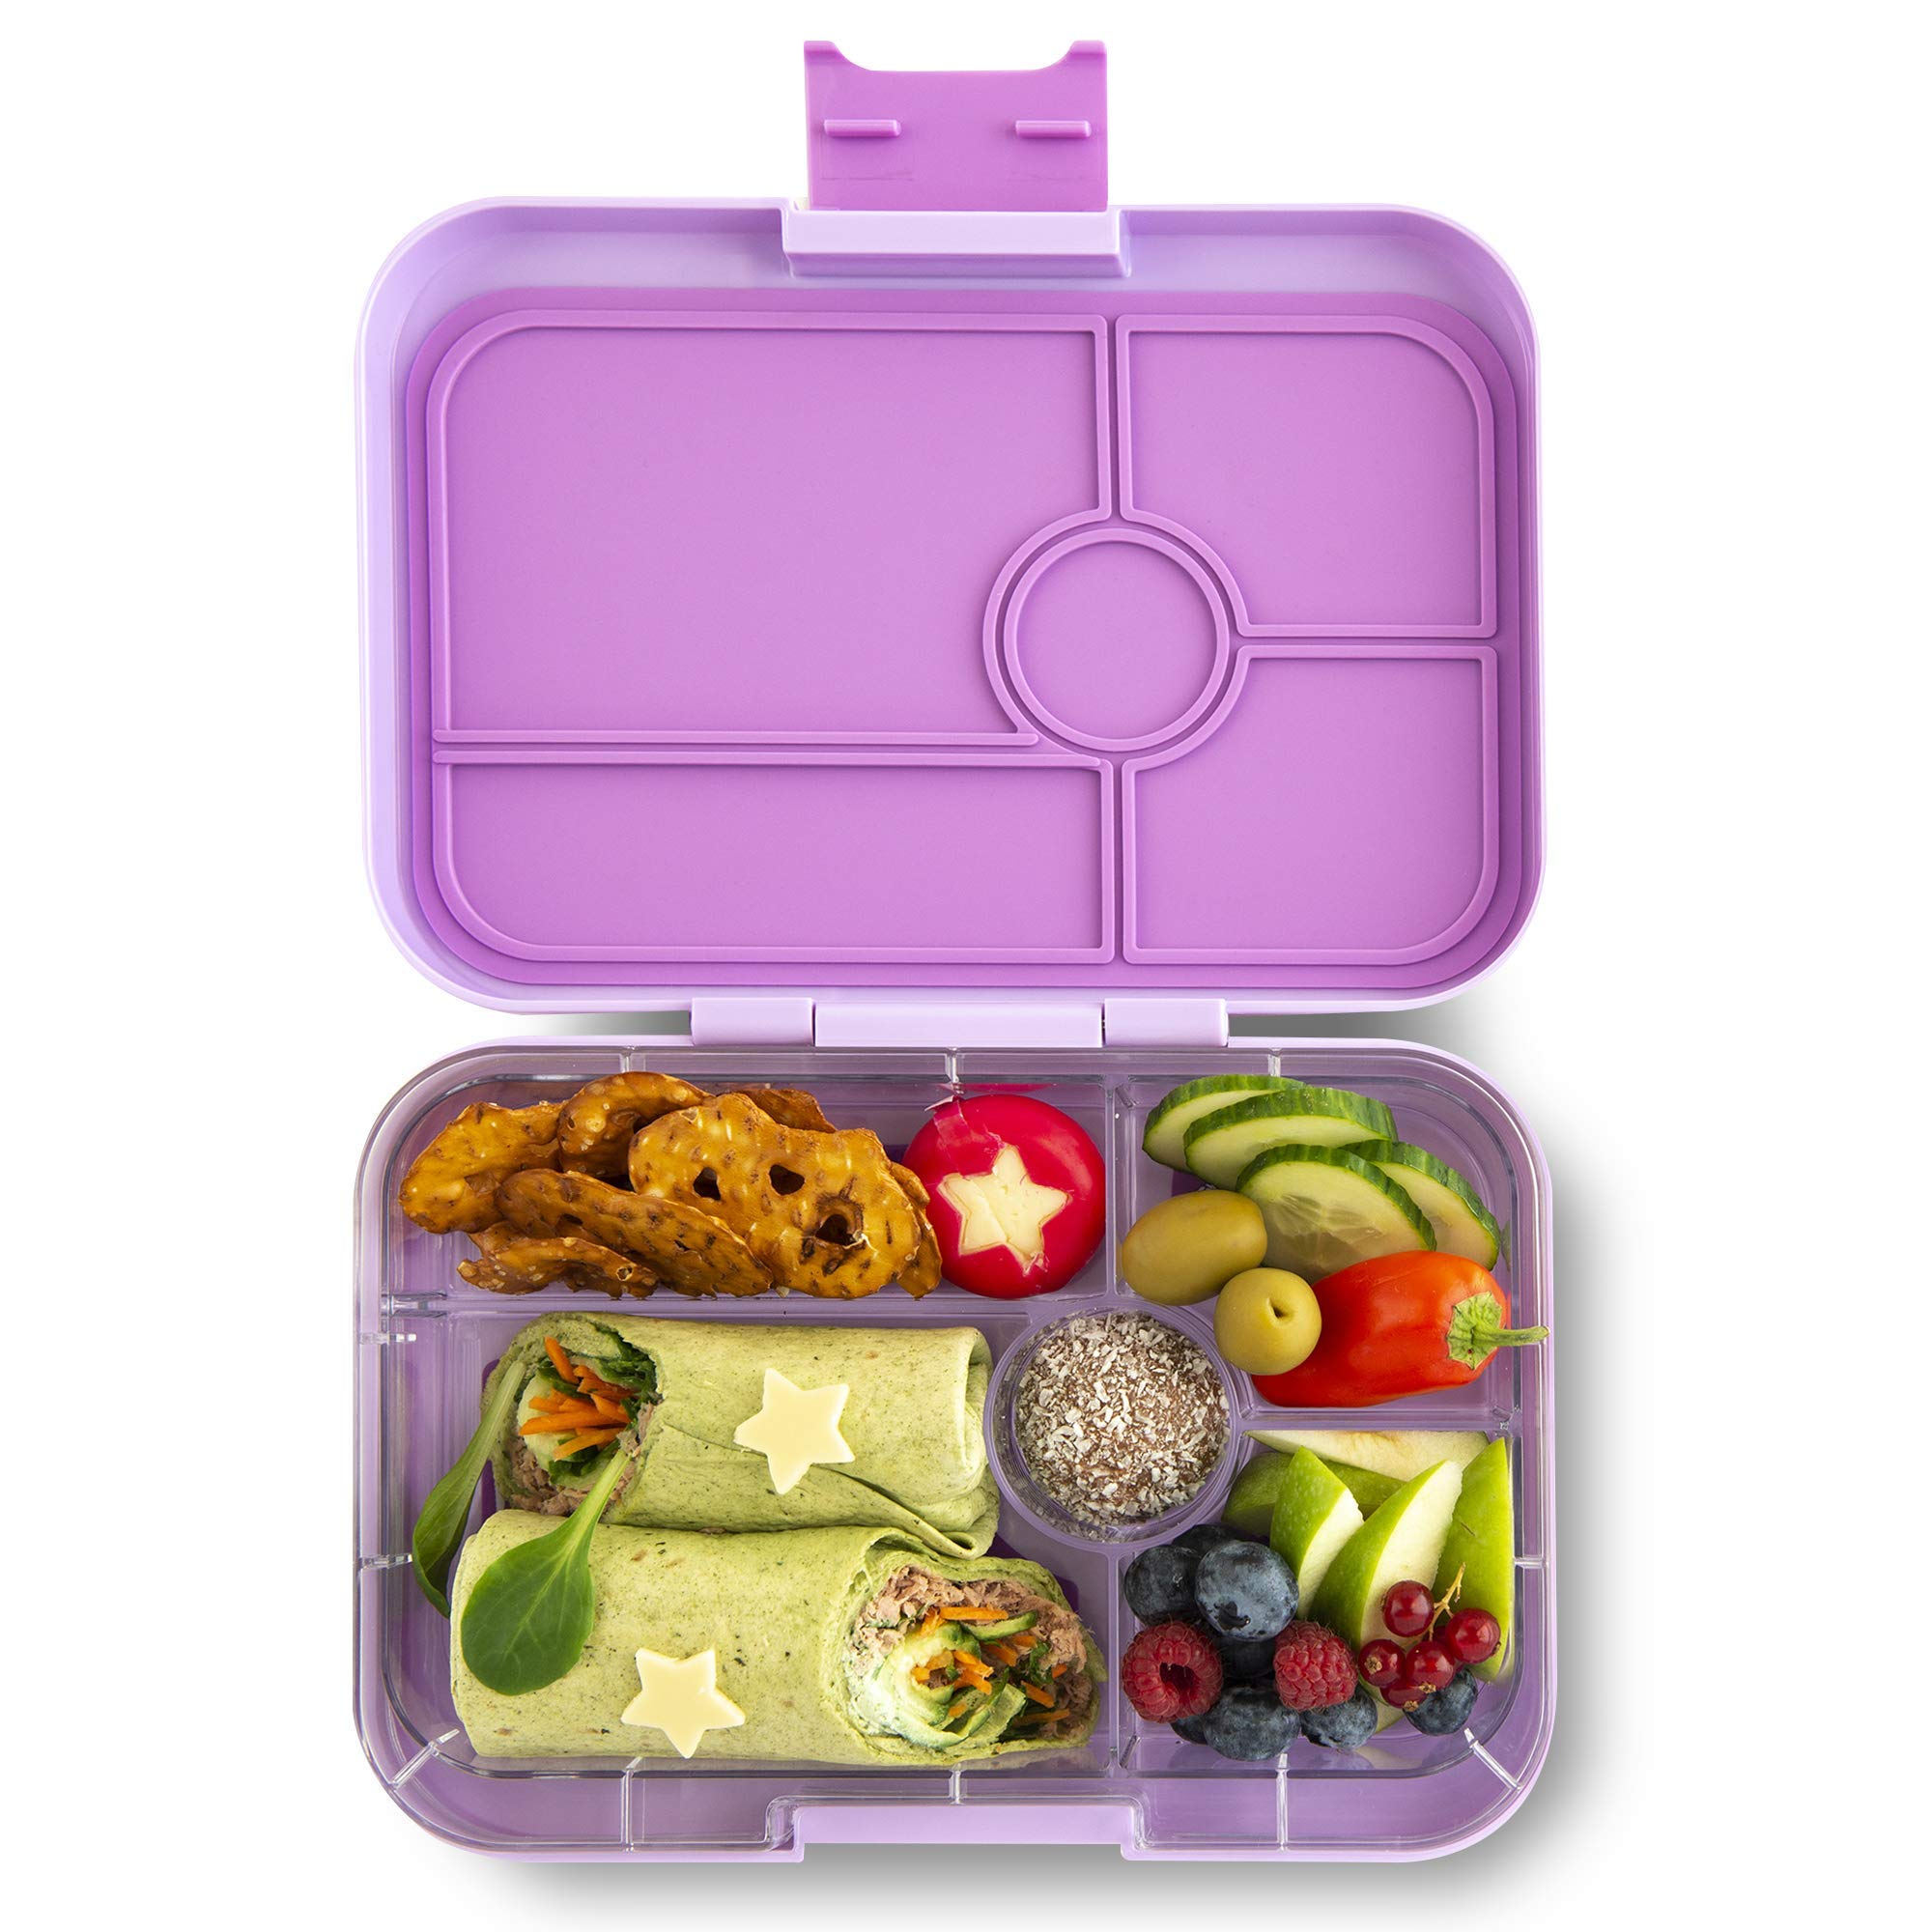 Yumbox TAPAS Larger Size (Lila Purple) 5 compartment Leakproof Bento lunch box for Pre-teens, Teens & Adults